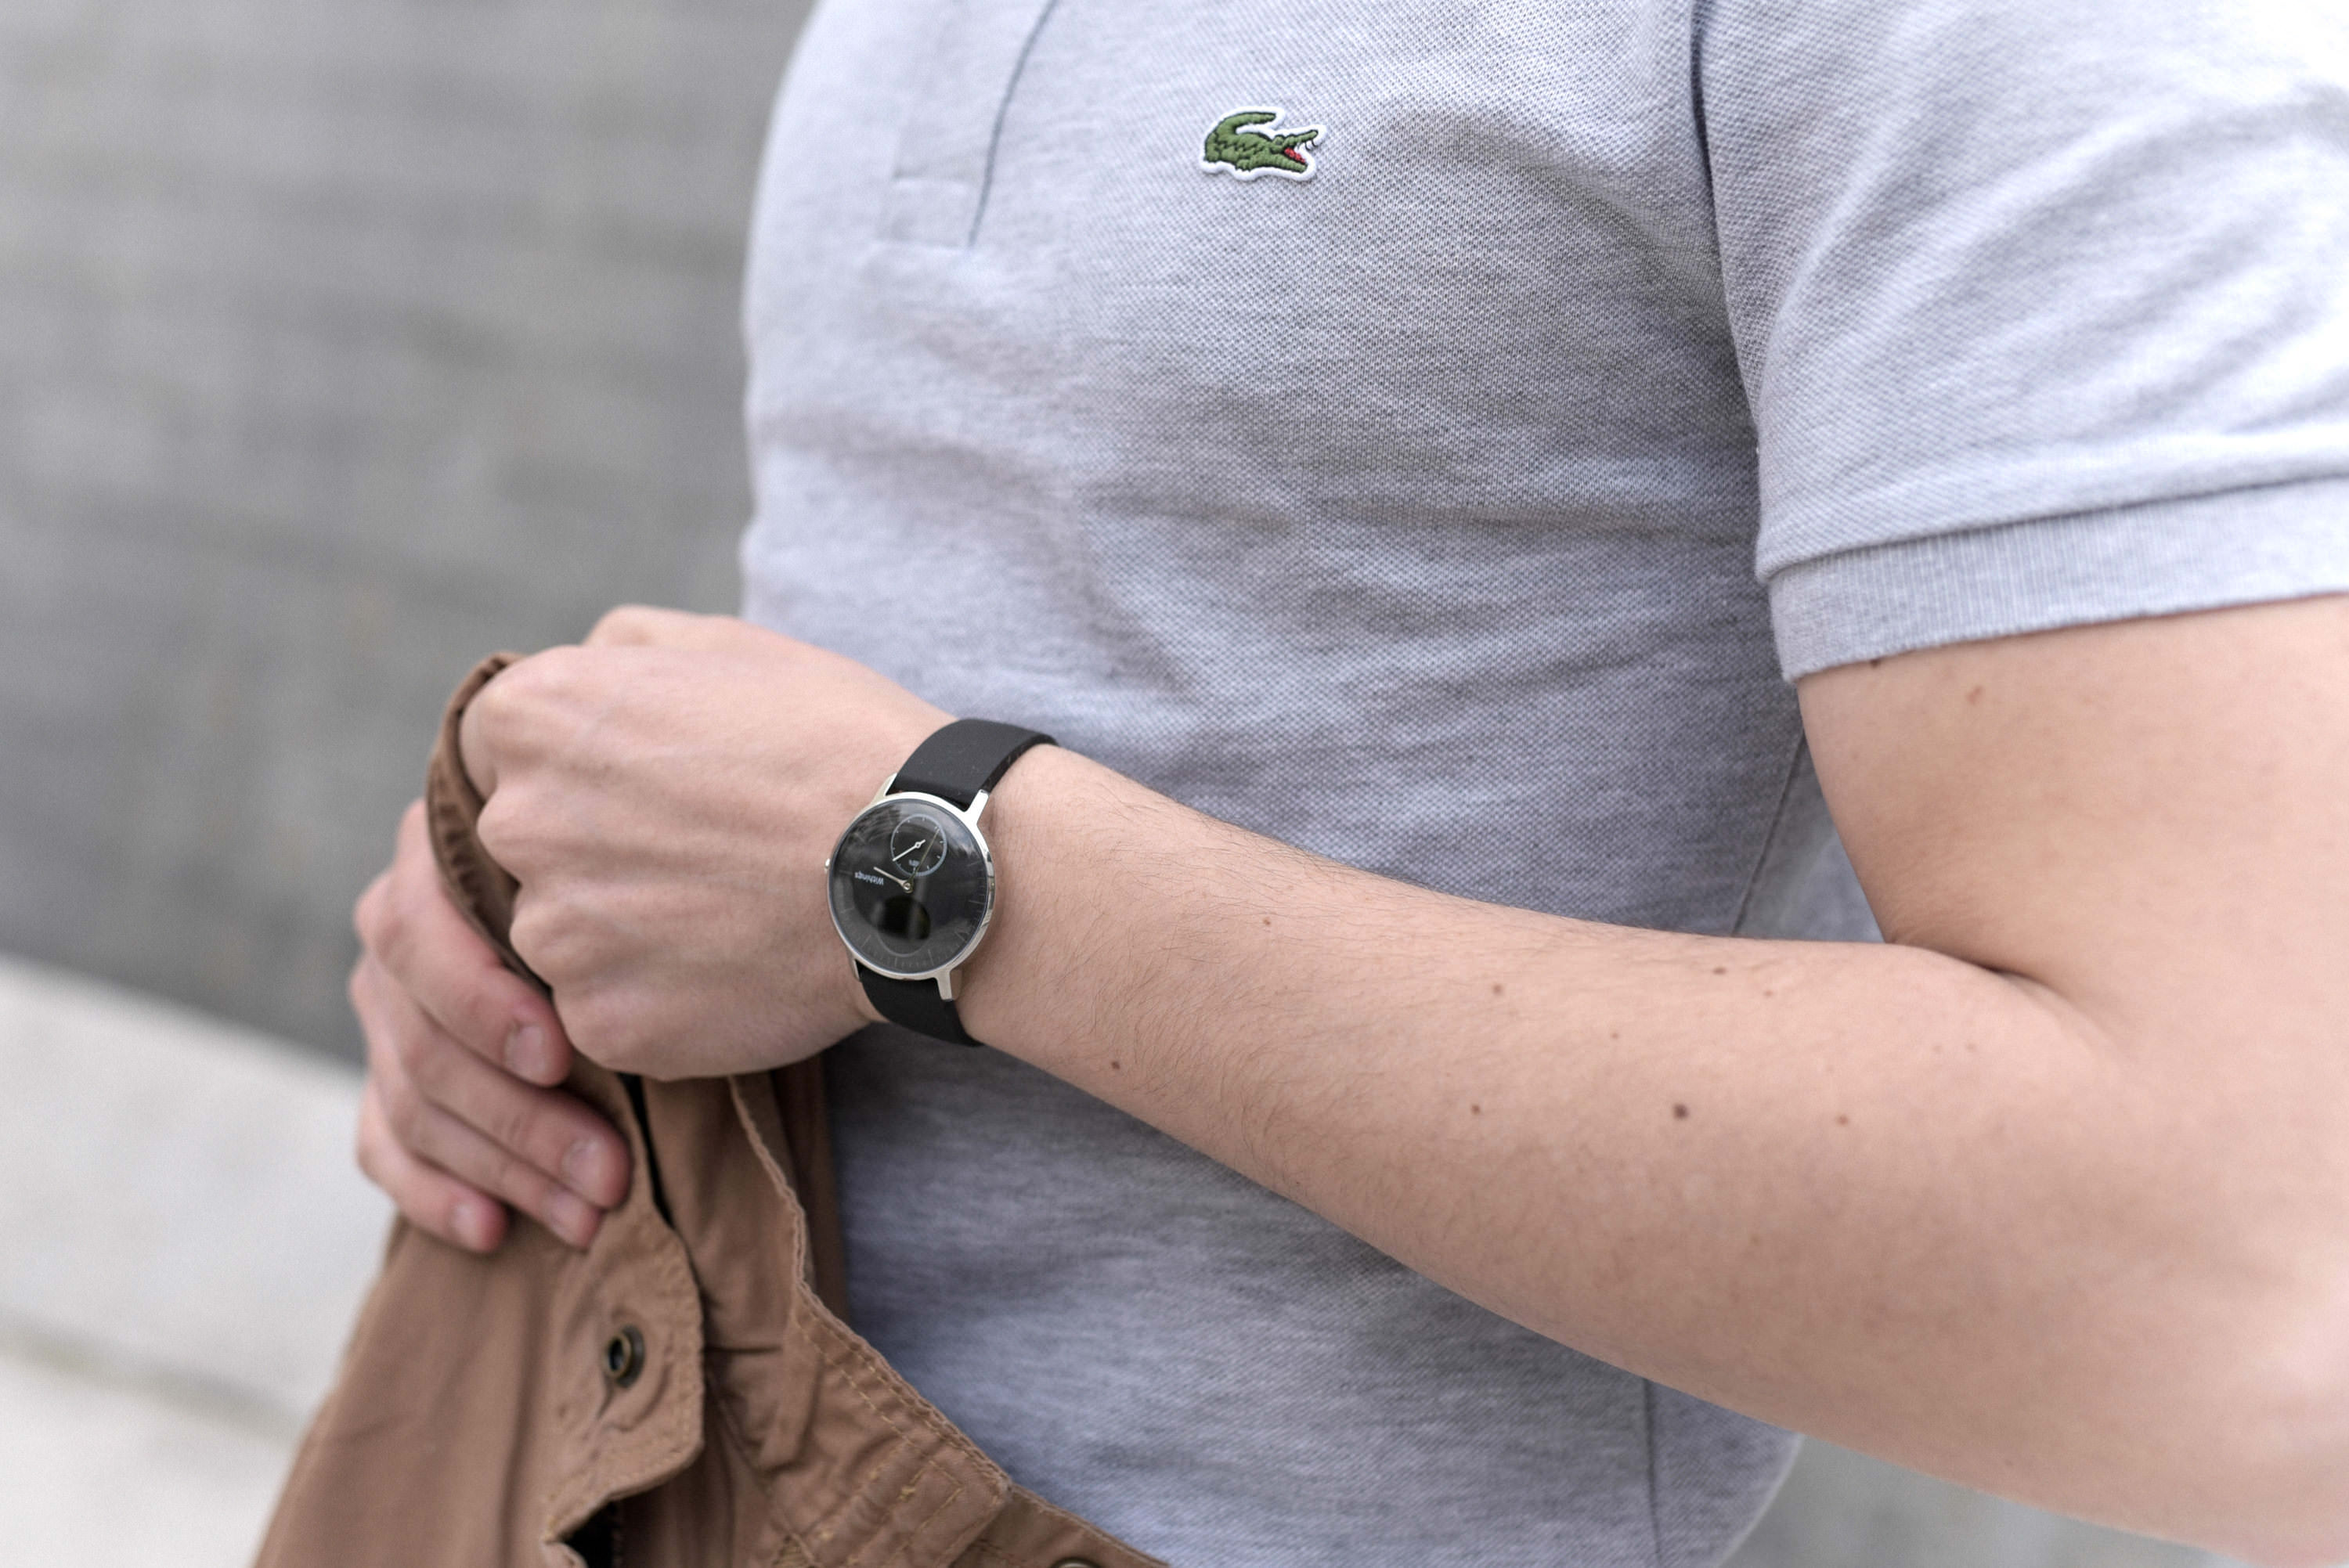 montre connectee withings portee